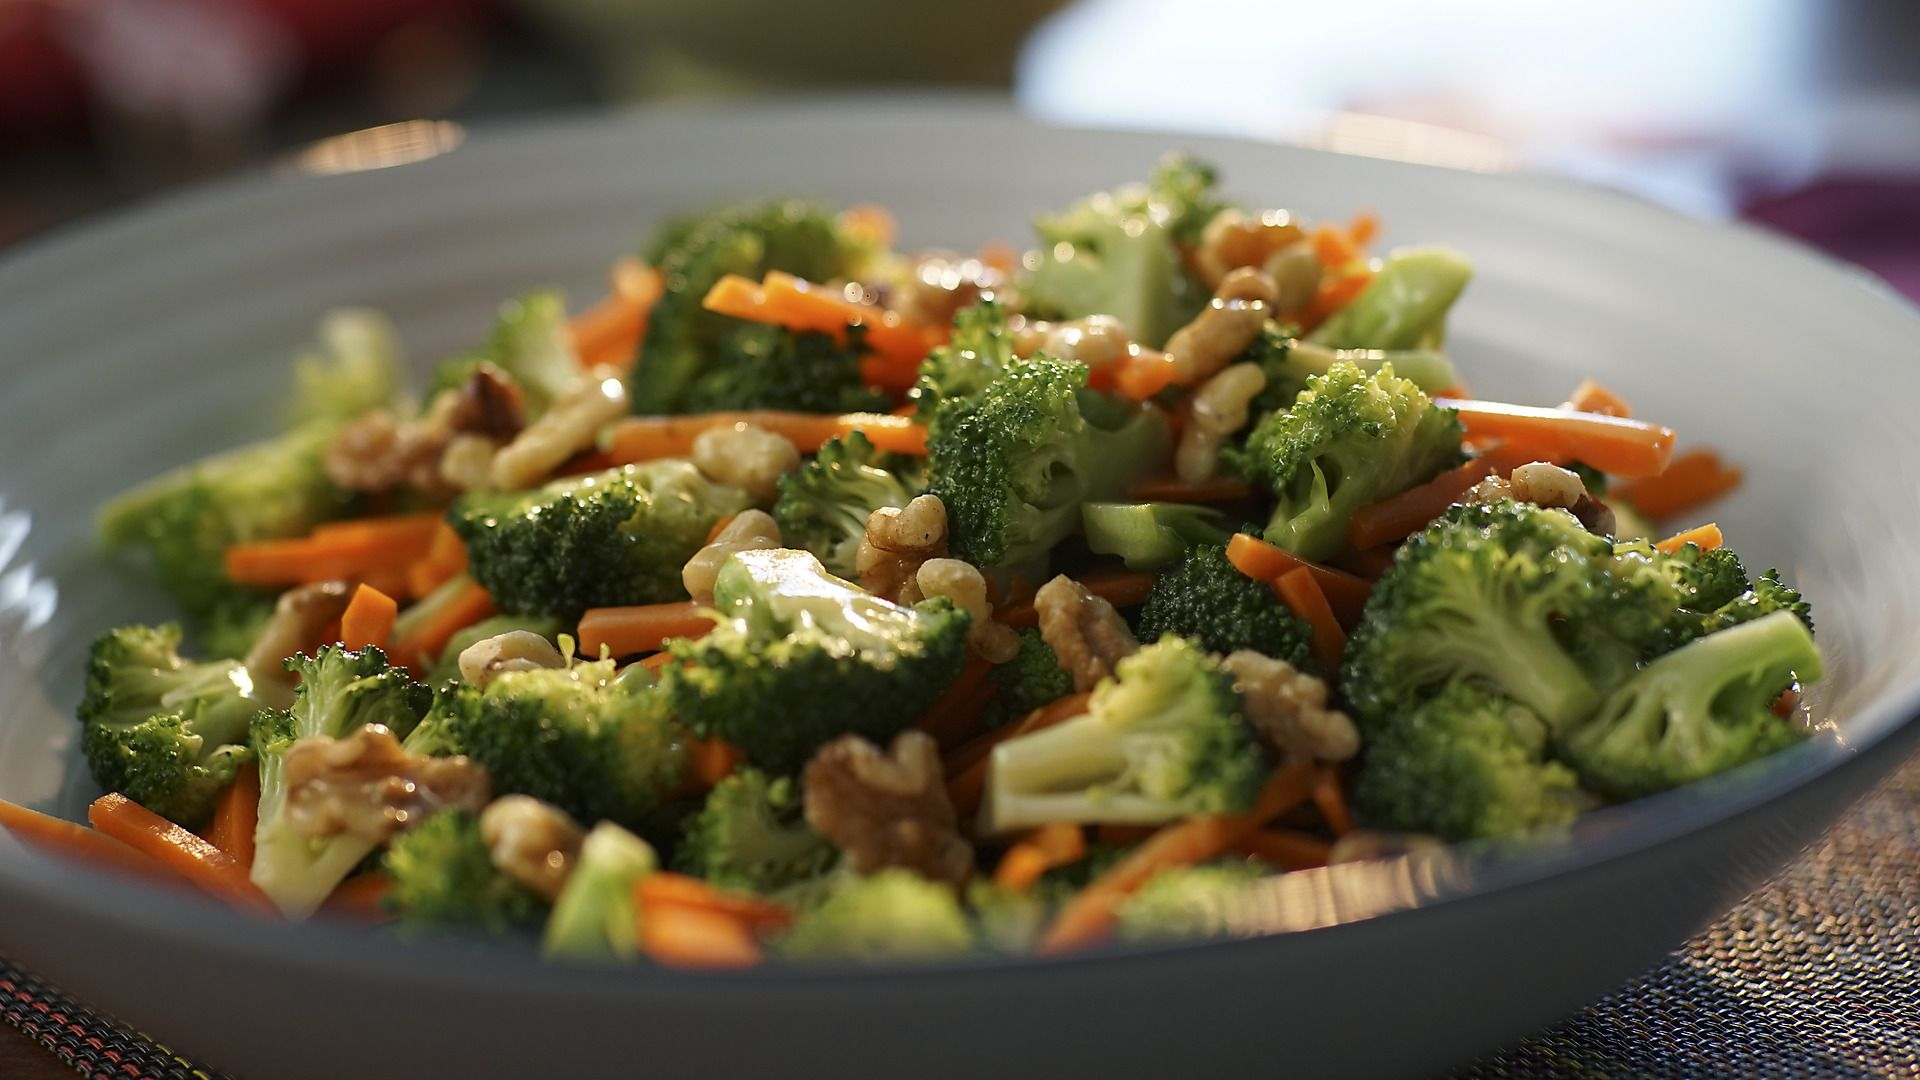 Valerie Bertinelli And Her Husband Tom Are Hosting Friends From Ohio And Valerie Plans An Effortless Meal T Food Network Recipes Broccoli Side Dish Broccoli